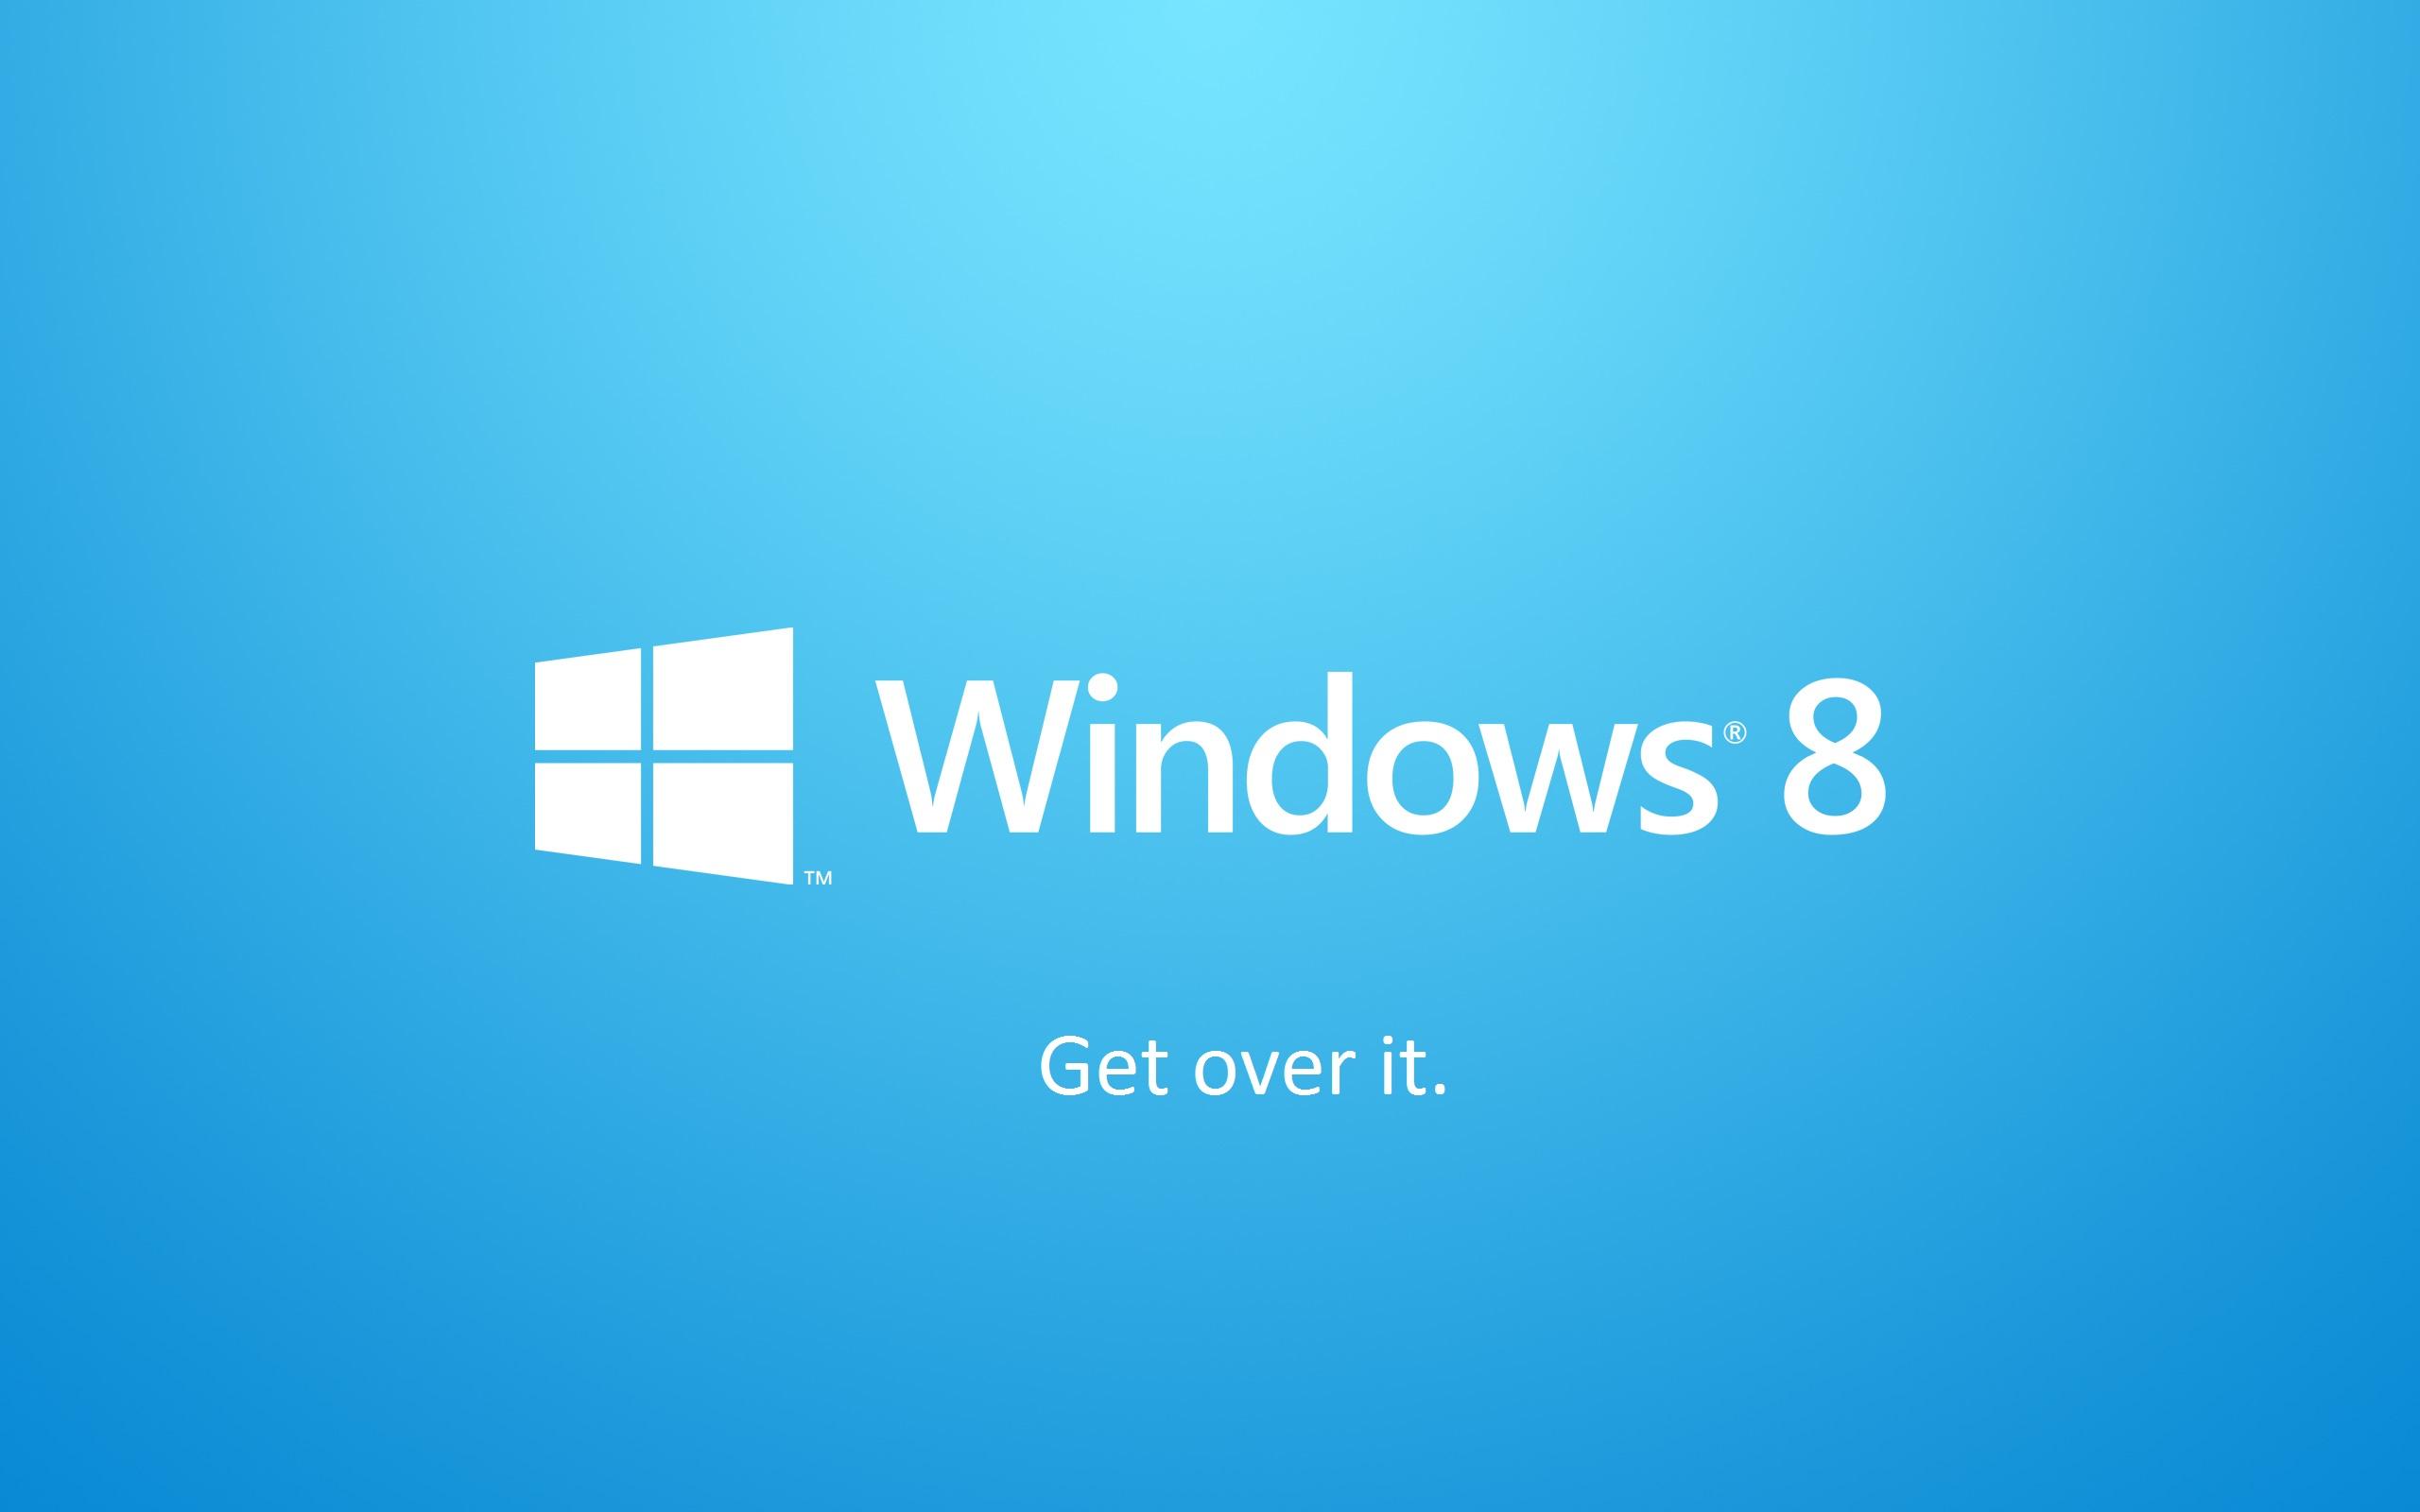 Windows 8: Get Over It. Right-click and Save As to use as your wallpaper.